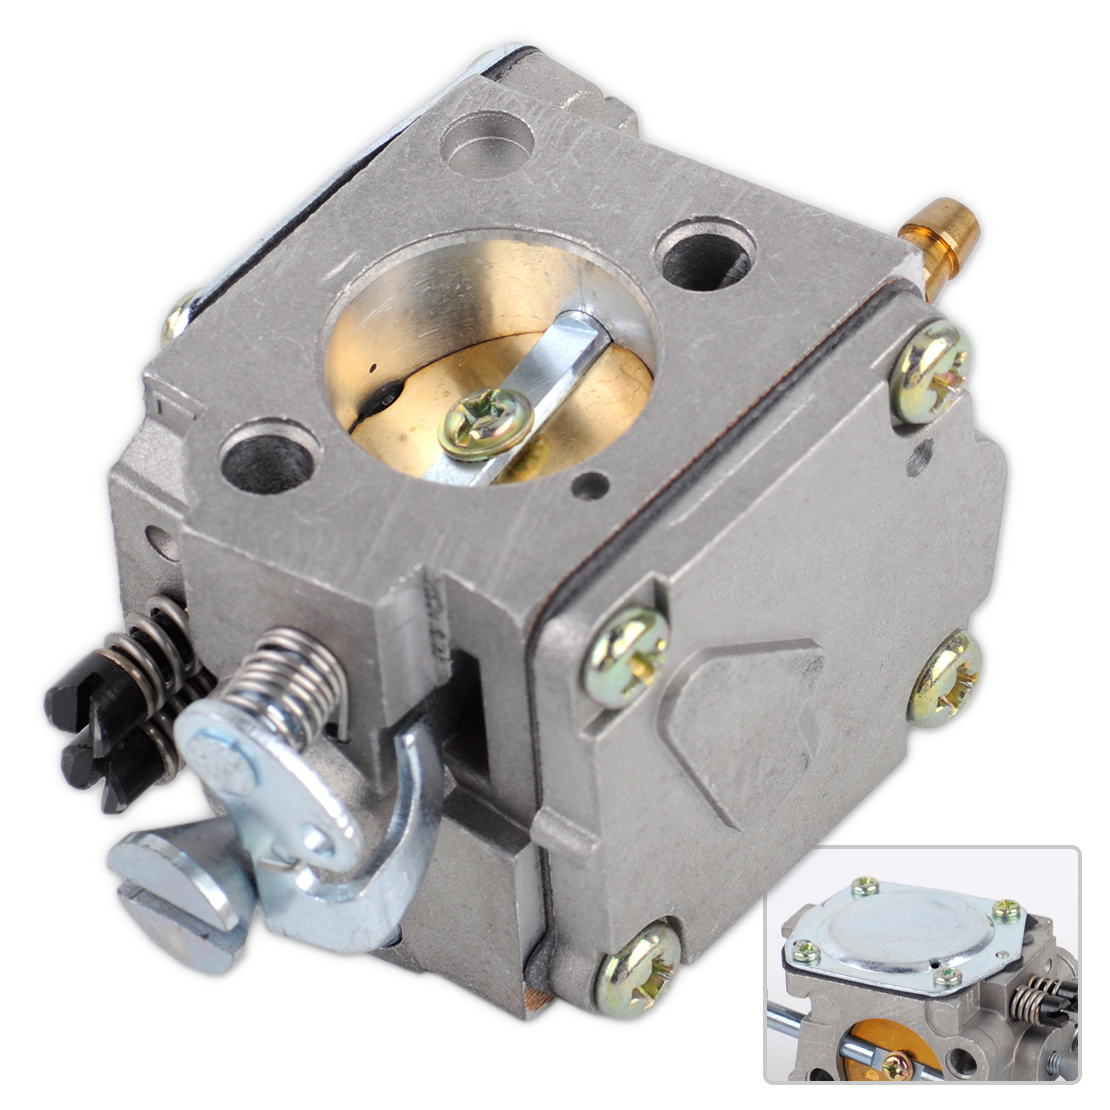 LETAOSK Carburetor Engine Motor Carb Fit For Husqvarna 61 266 268 272 272XP ChainsawAccessories